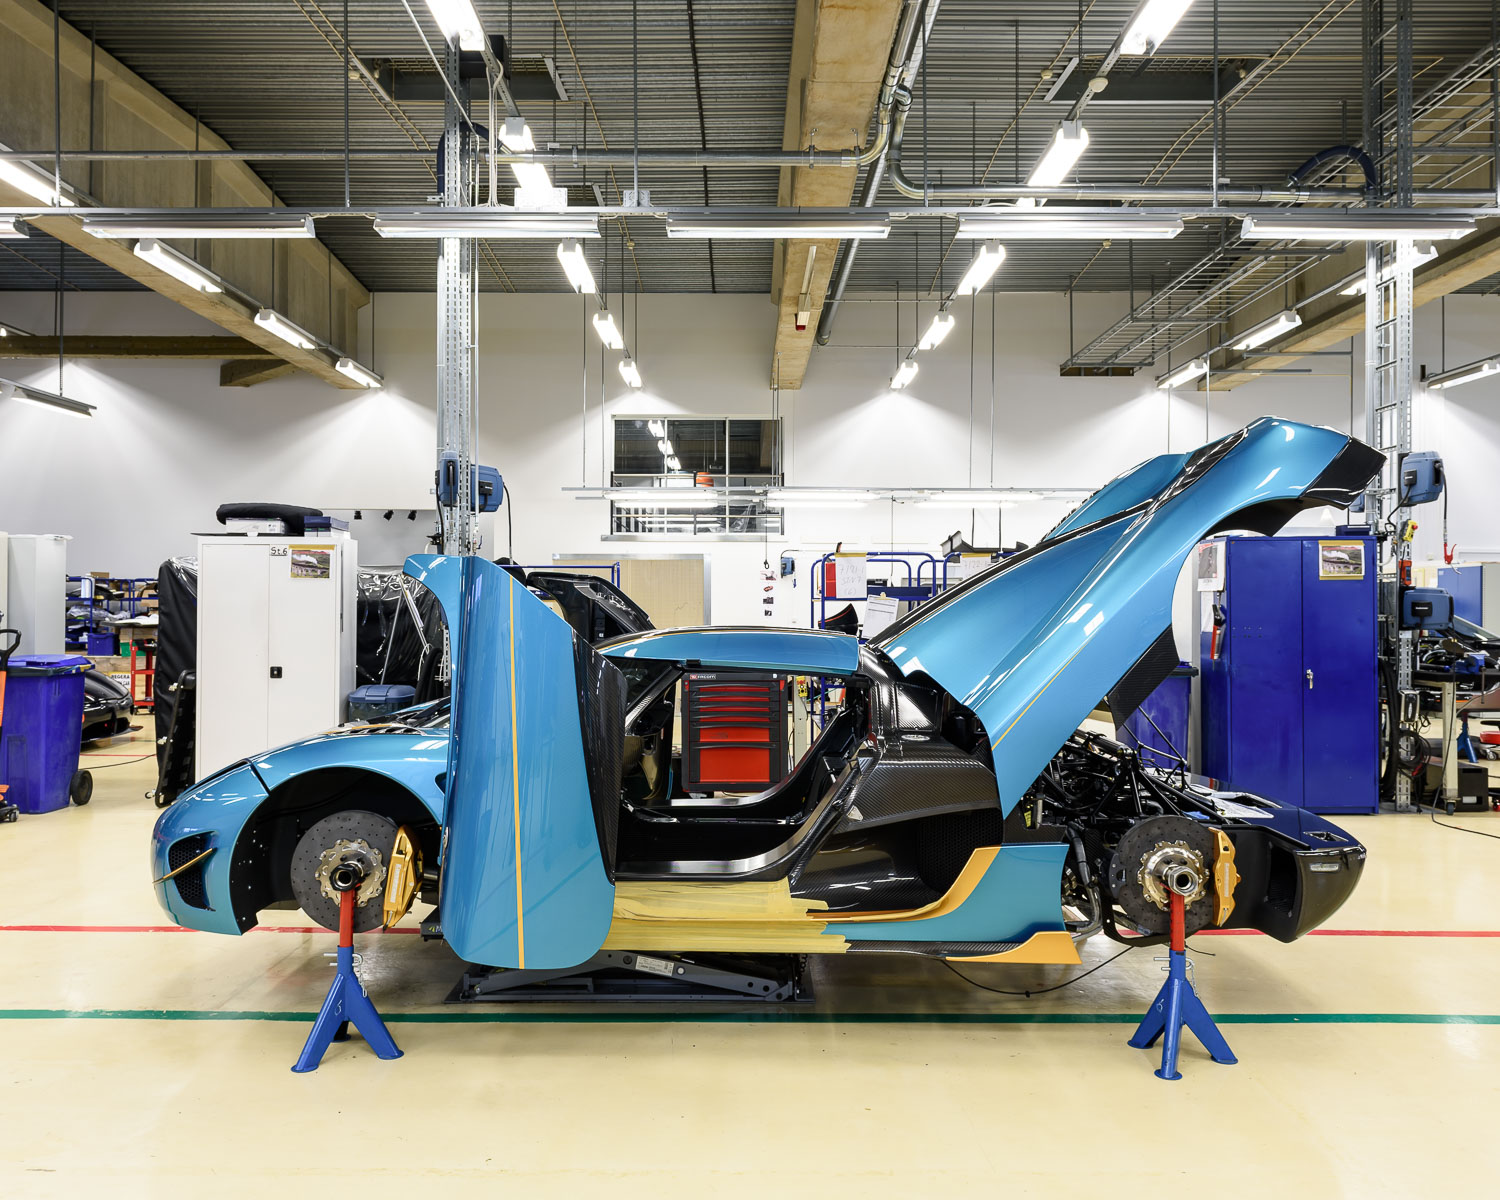 A car on the production line, towards the end of the process.